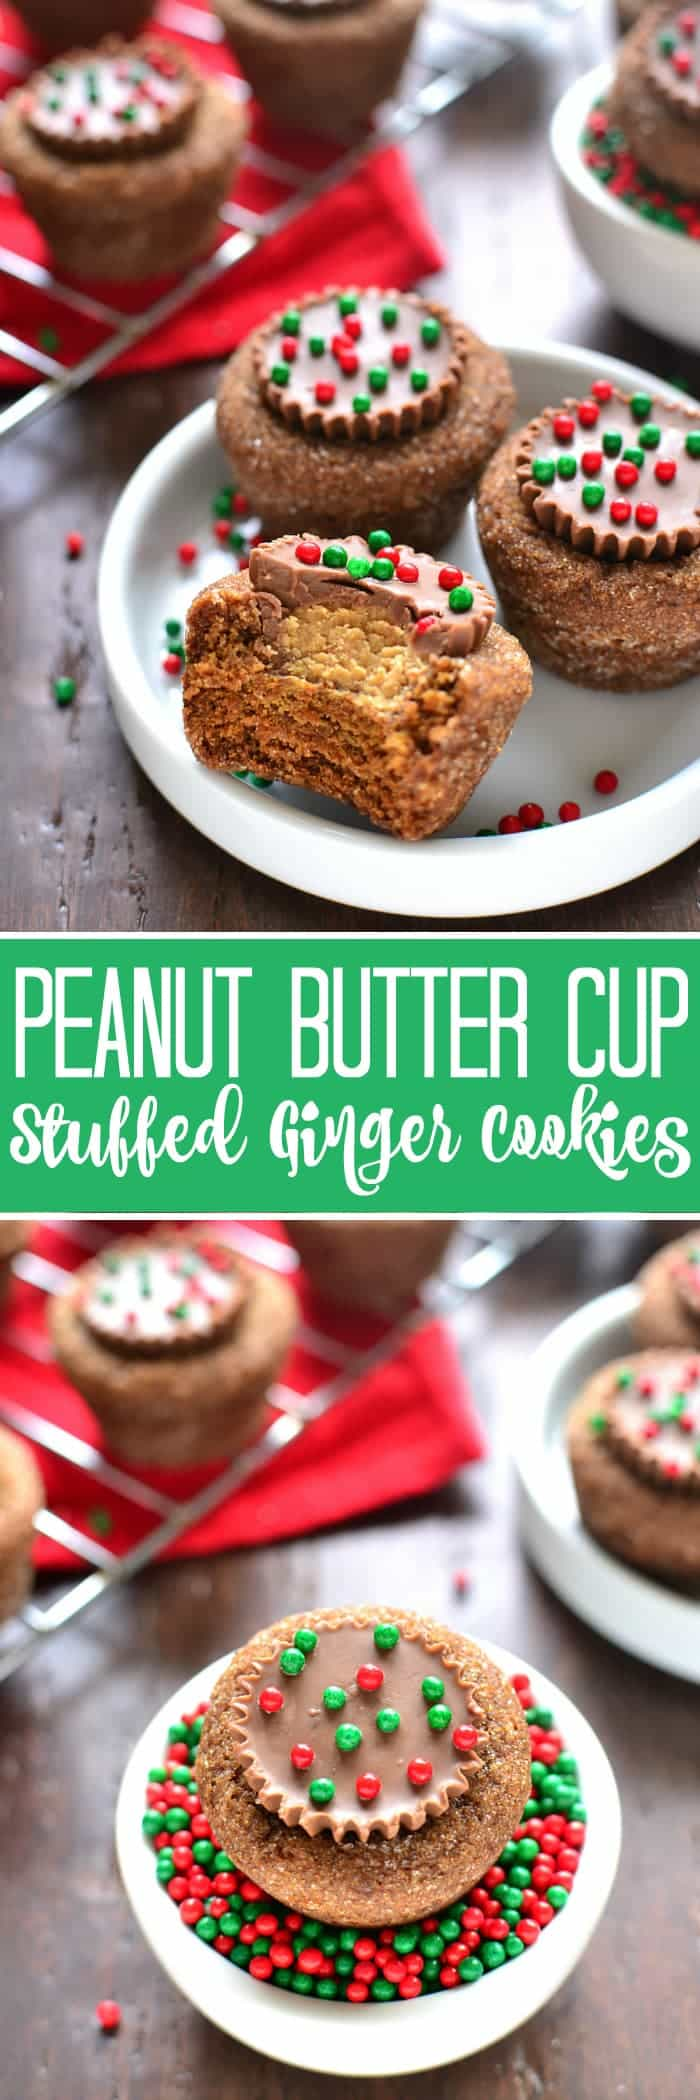 These Peanut Butter Cup Stuffed Ginger Cookies are deliciously sweet with an unexpected twist! The perfect addition to your holiday cookie plate!